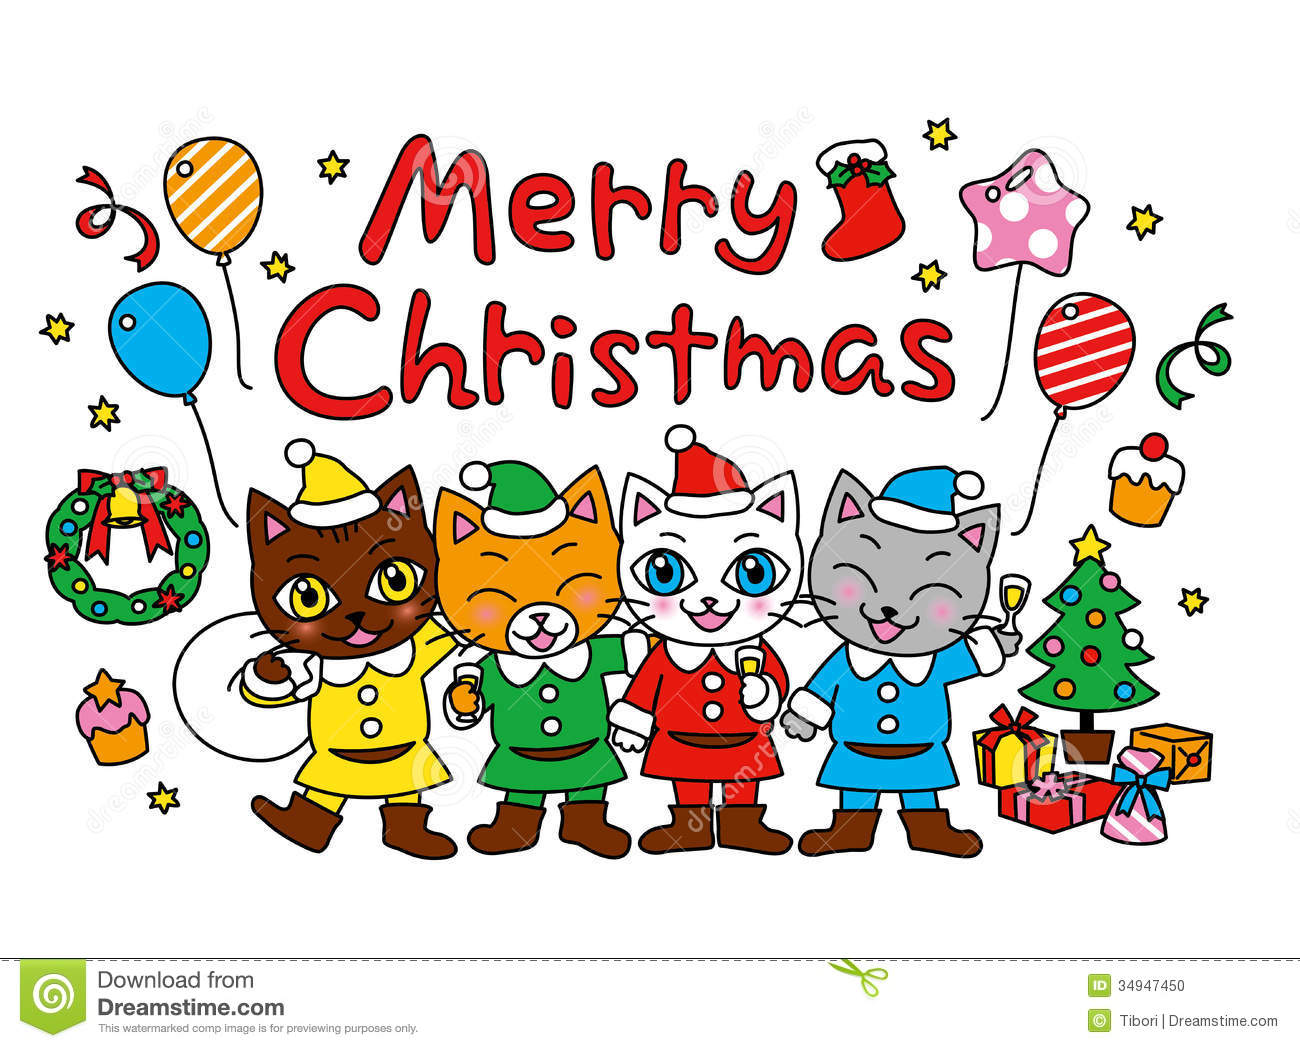 Party clipart merry christmas Christmas Clipart party merry christmas